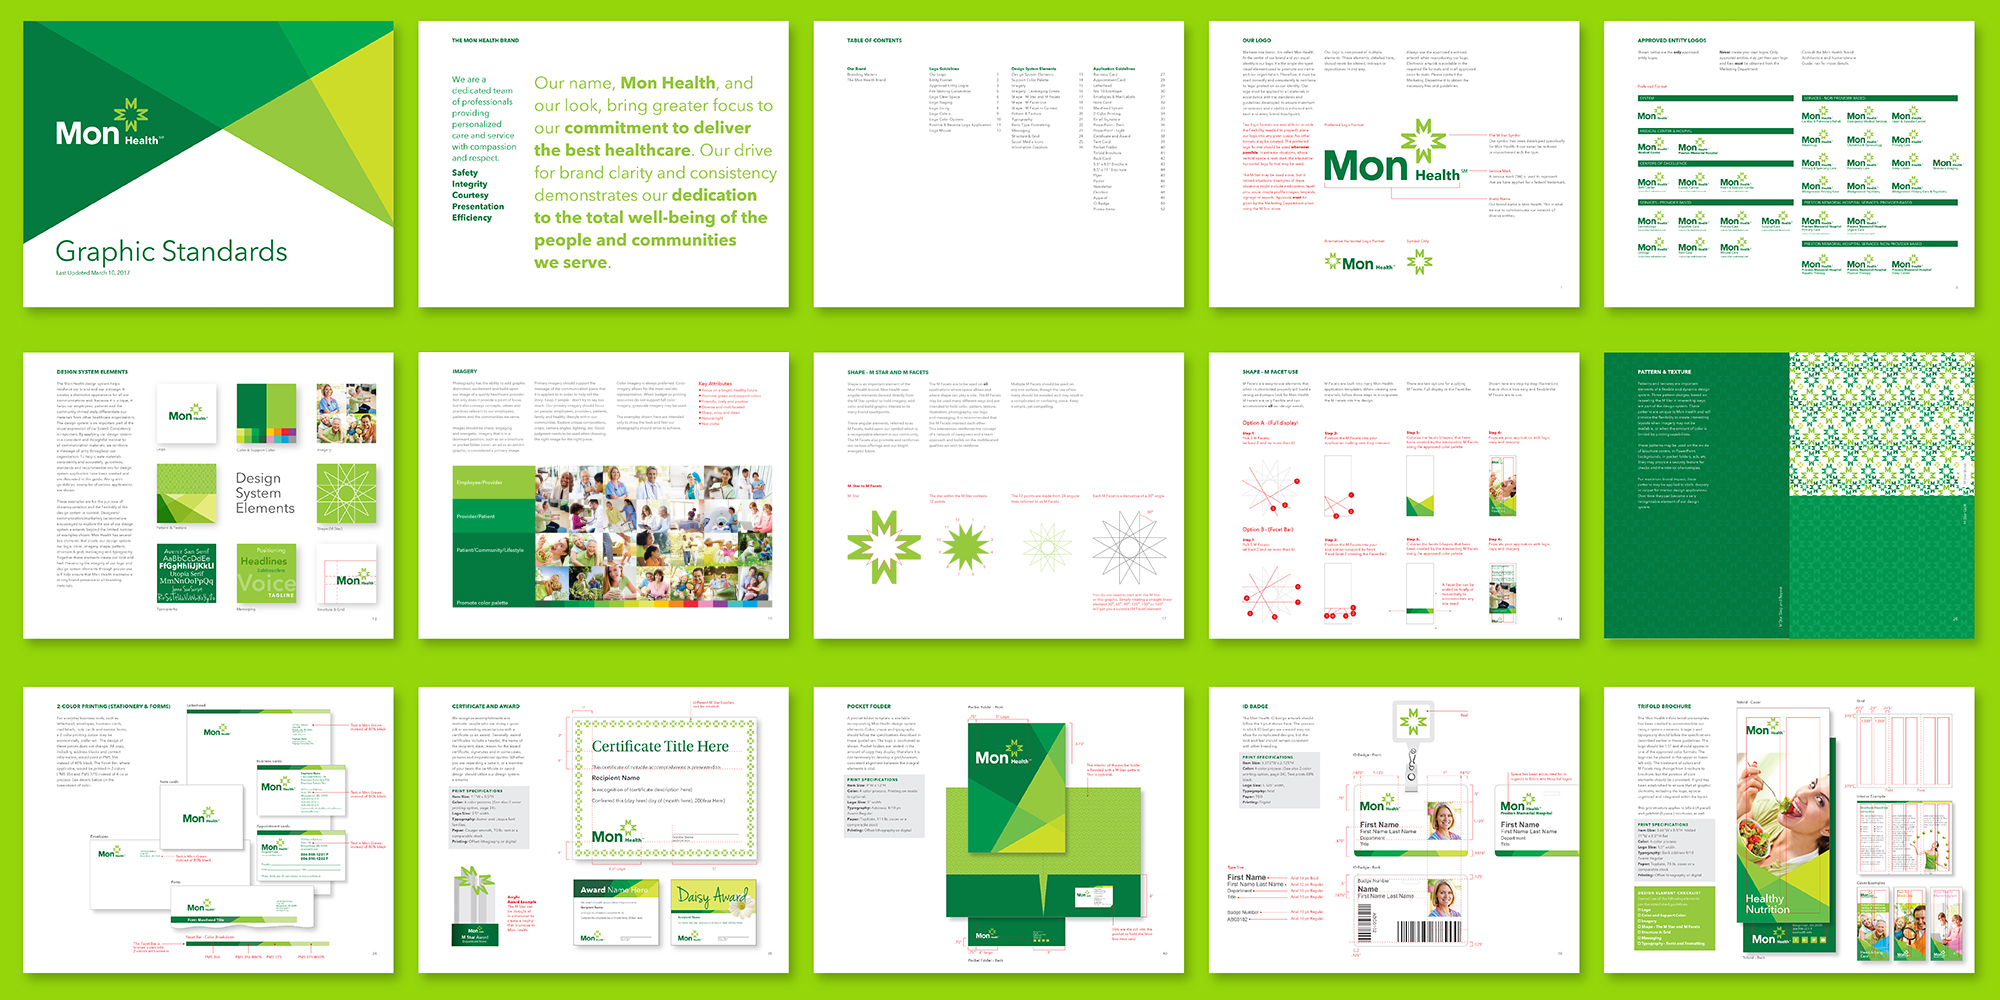 brand guidelines and visual identity system